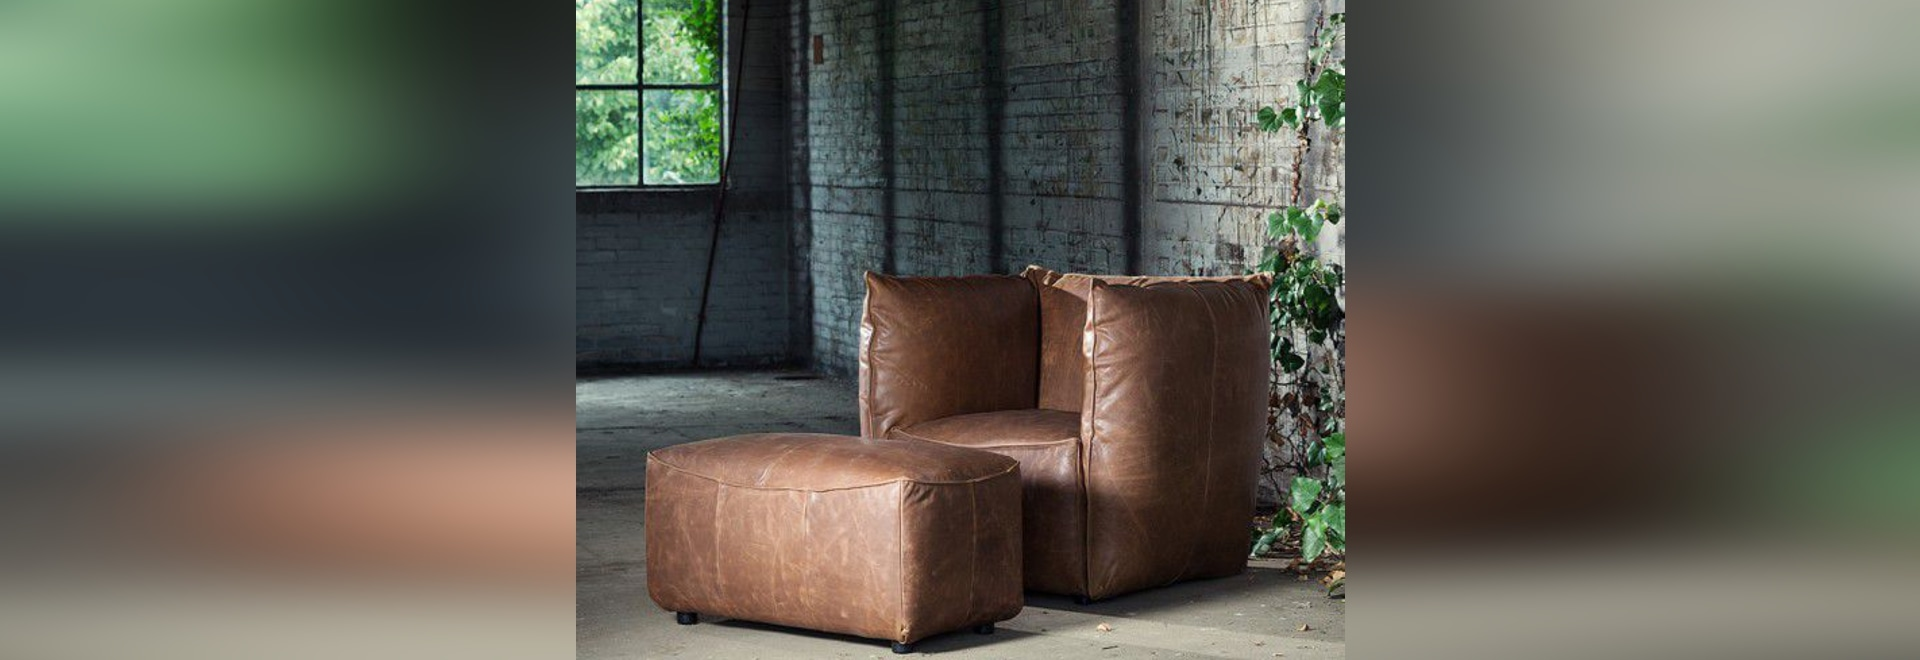 NEW: contemporary armchair by Jess design